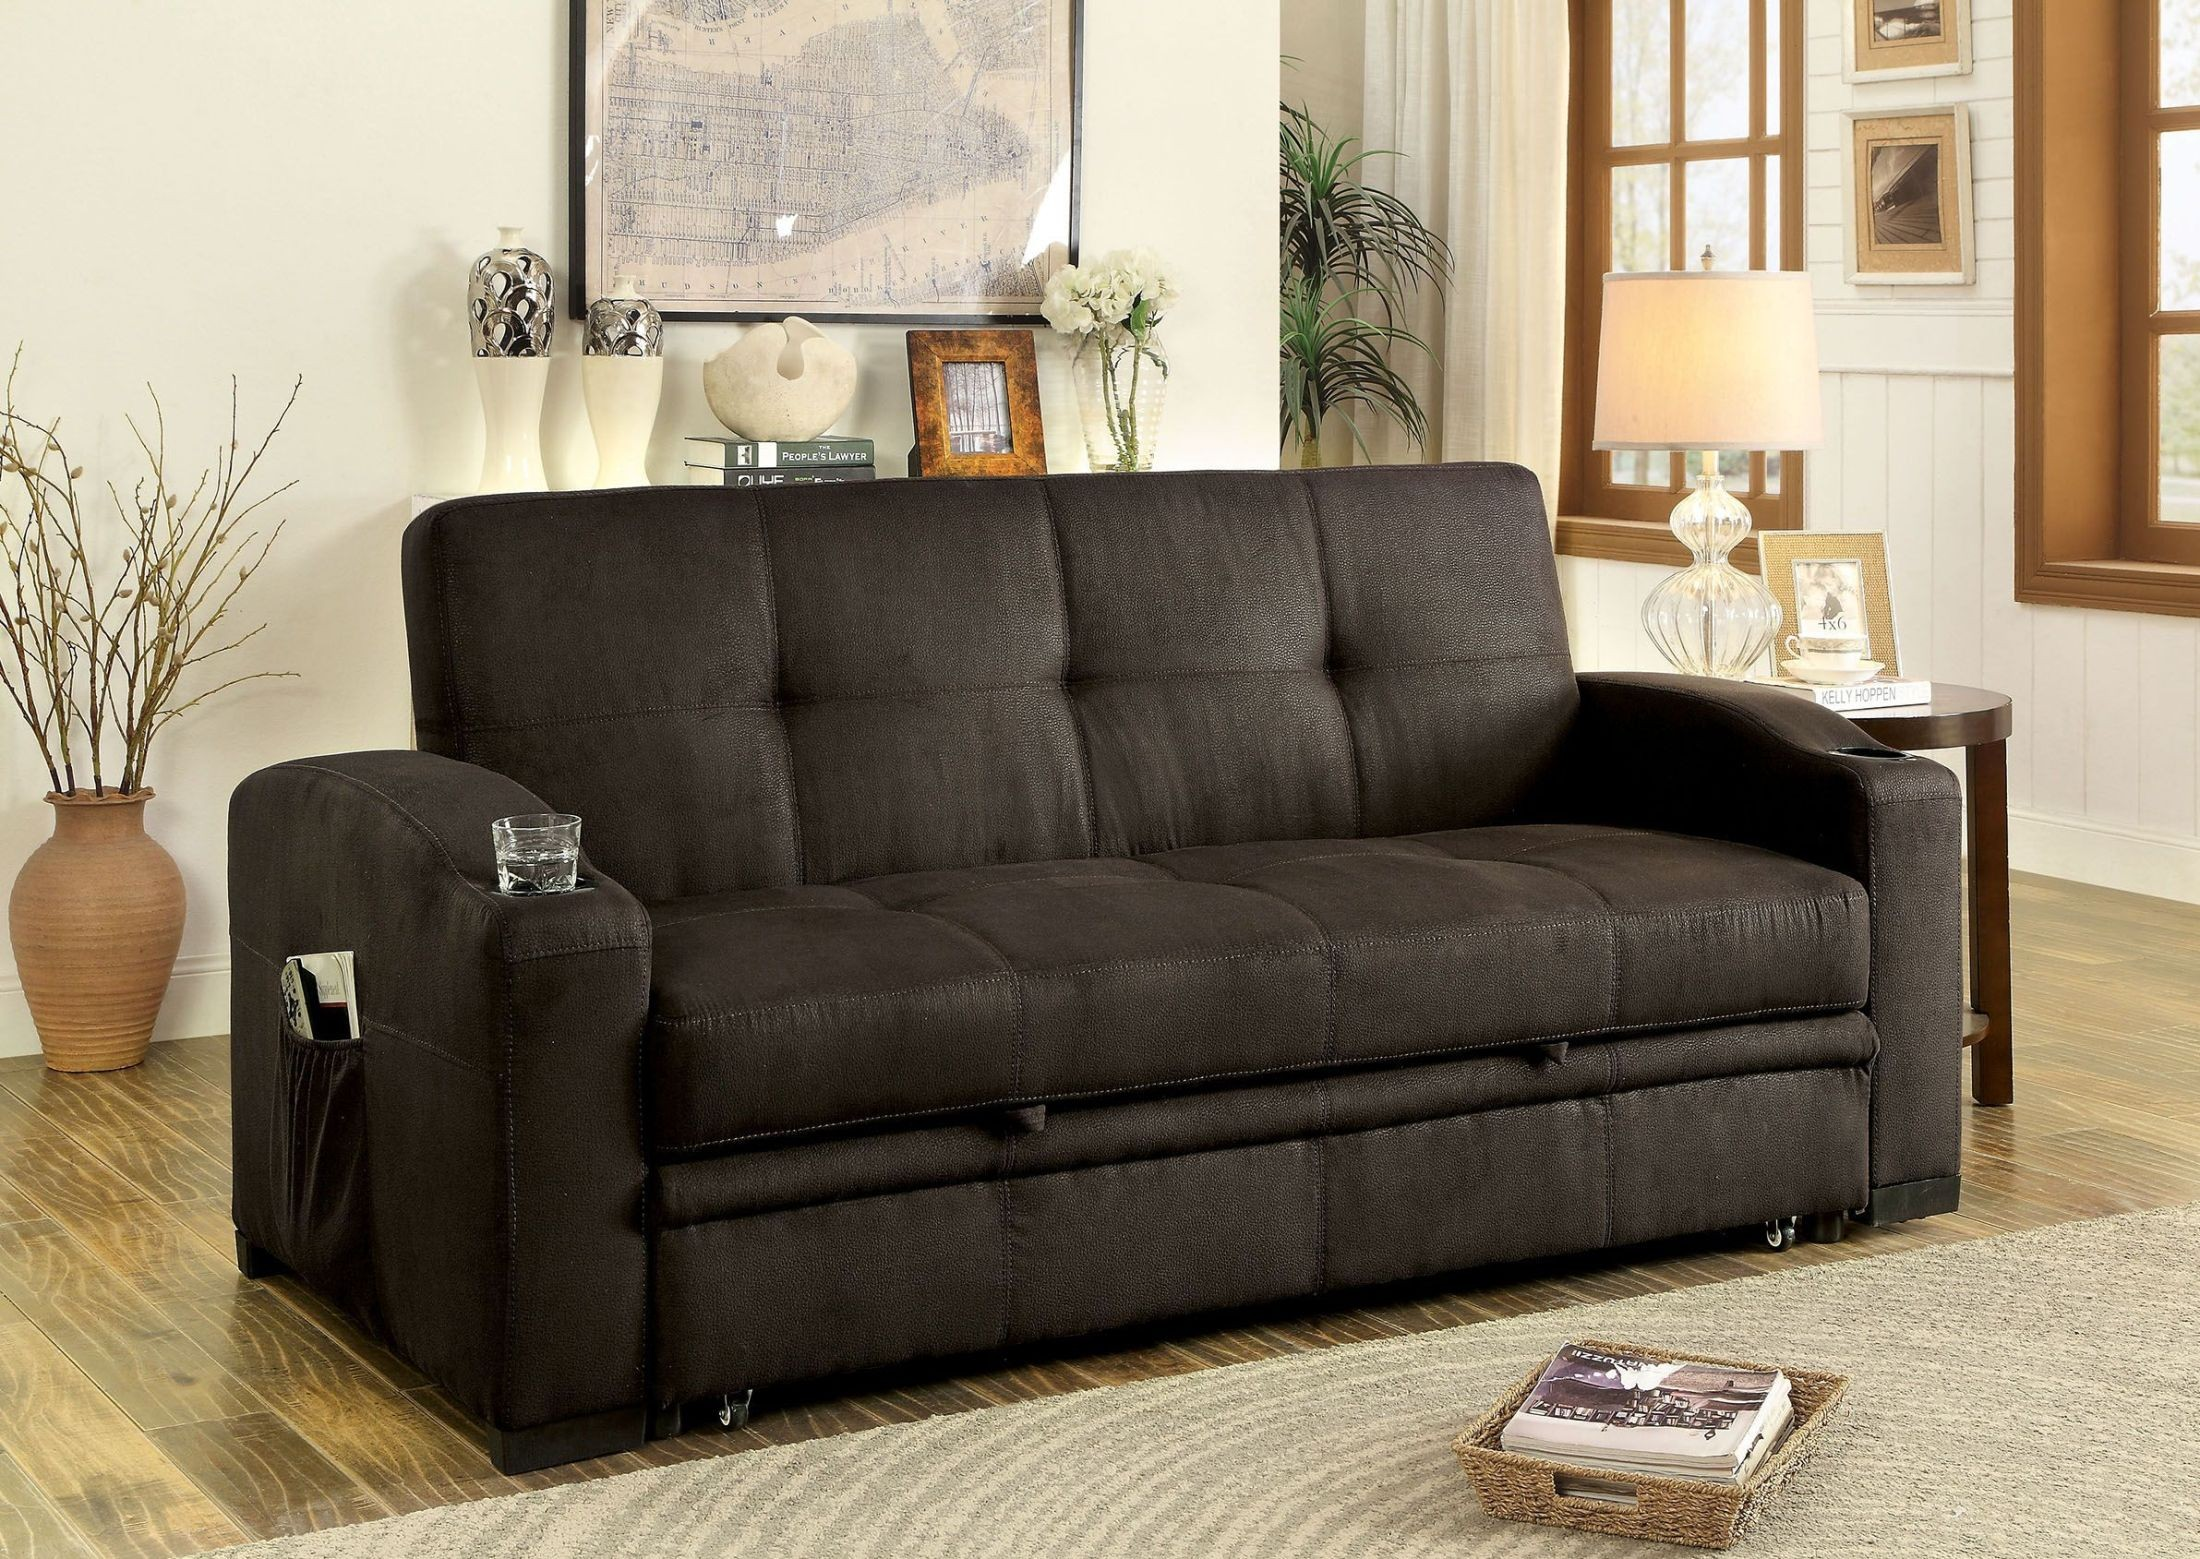 mavis dark brown futon sofa from furniture of america coleman furniture. Black Bedroom Furniture Sets. Home Design Ideas